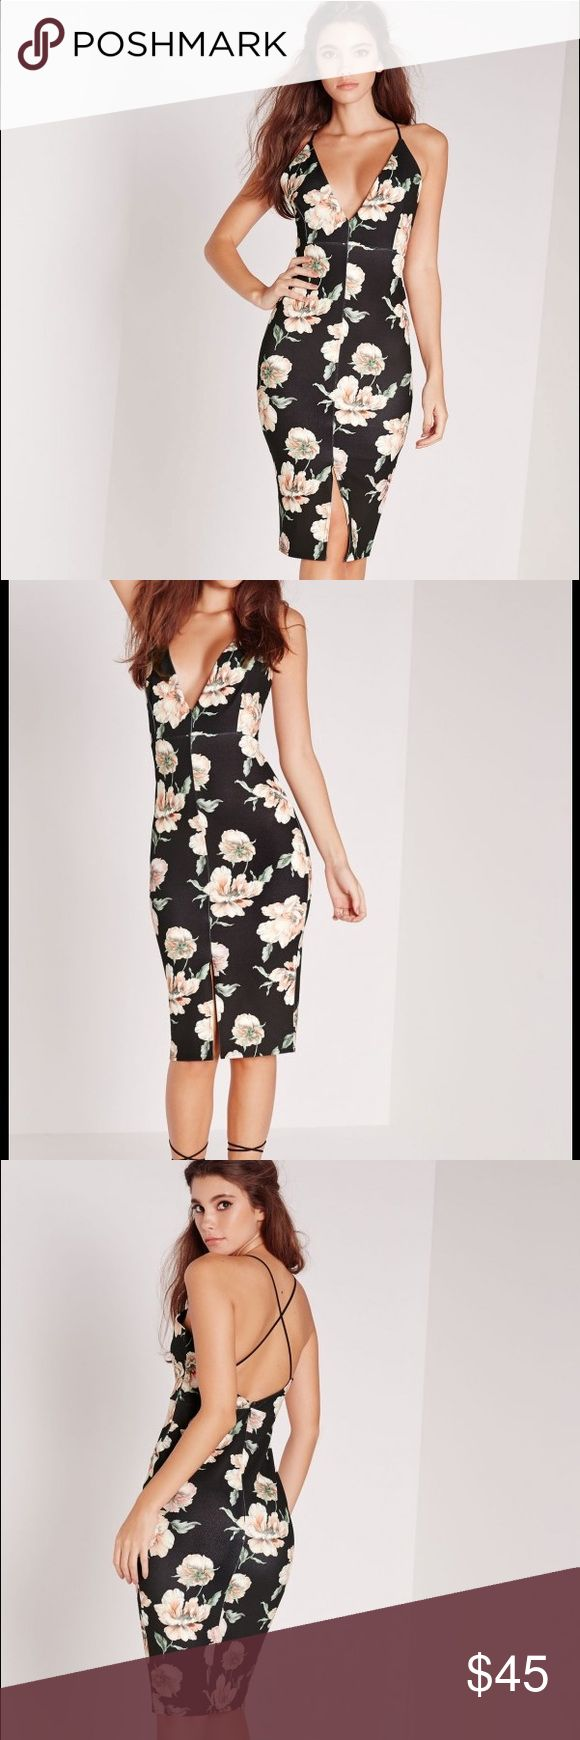 Misguided Floral Print Dress Gorgeous Misguided dress. Brand new with tags. US size 6. Misguided Dresses Midi